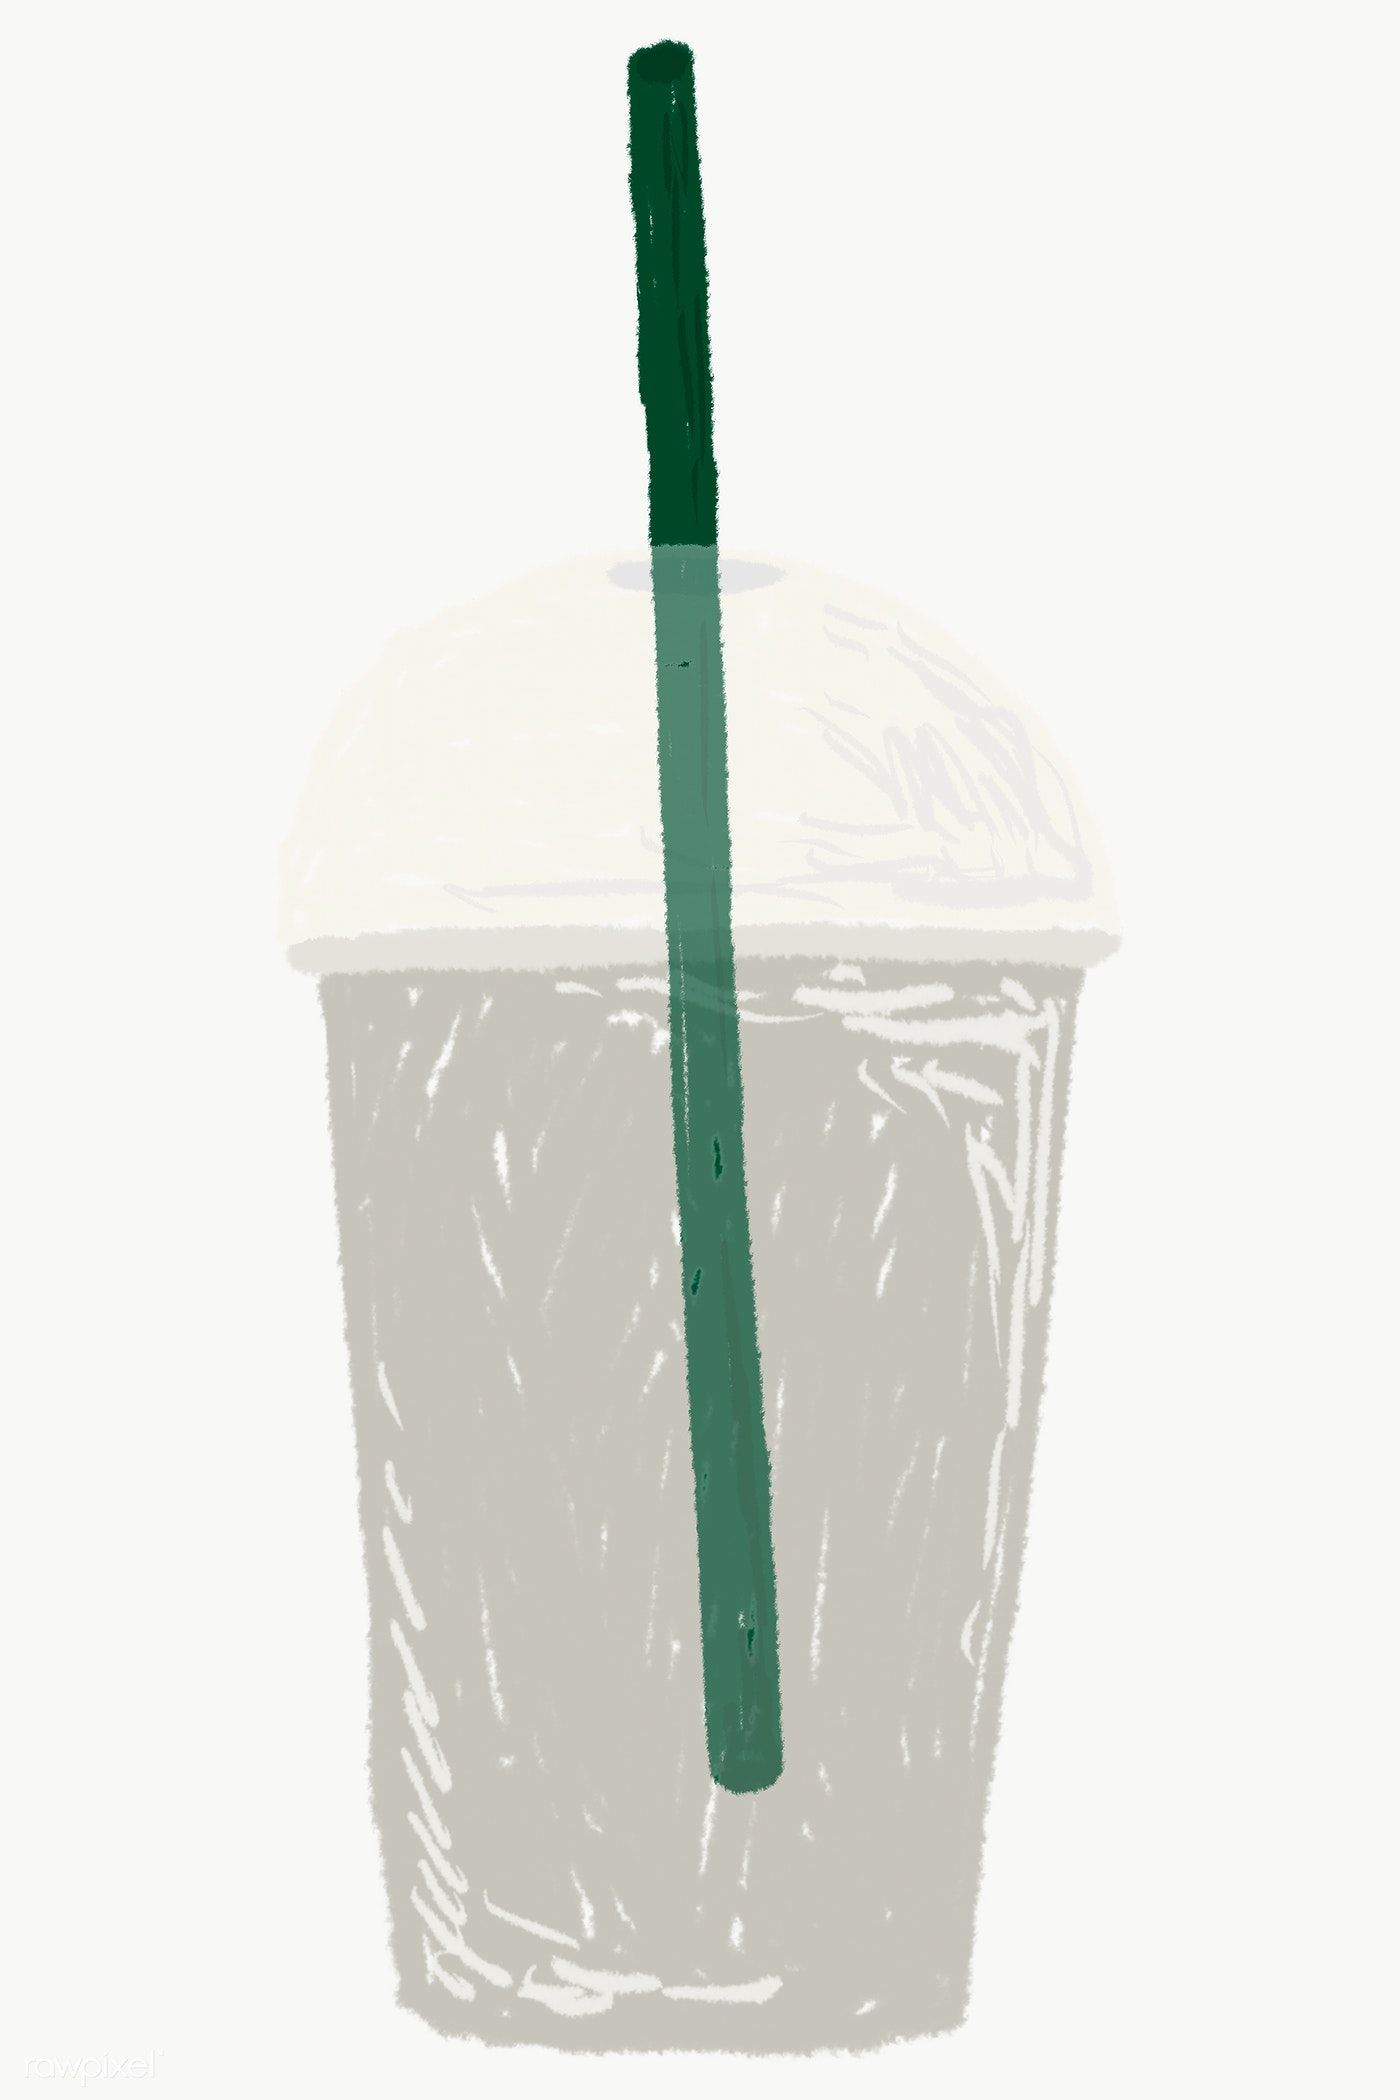 Plastic Cup With Straw Element Transparent Png Free Image By Rawpixel Com Sasi Plastic Cup With Straw Cup With Straw Plastic Cup